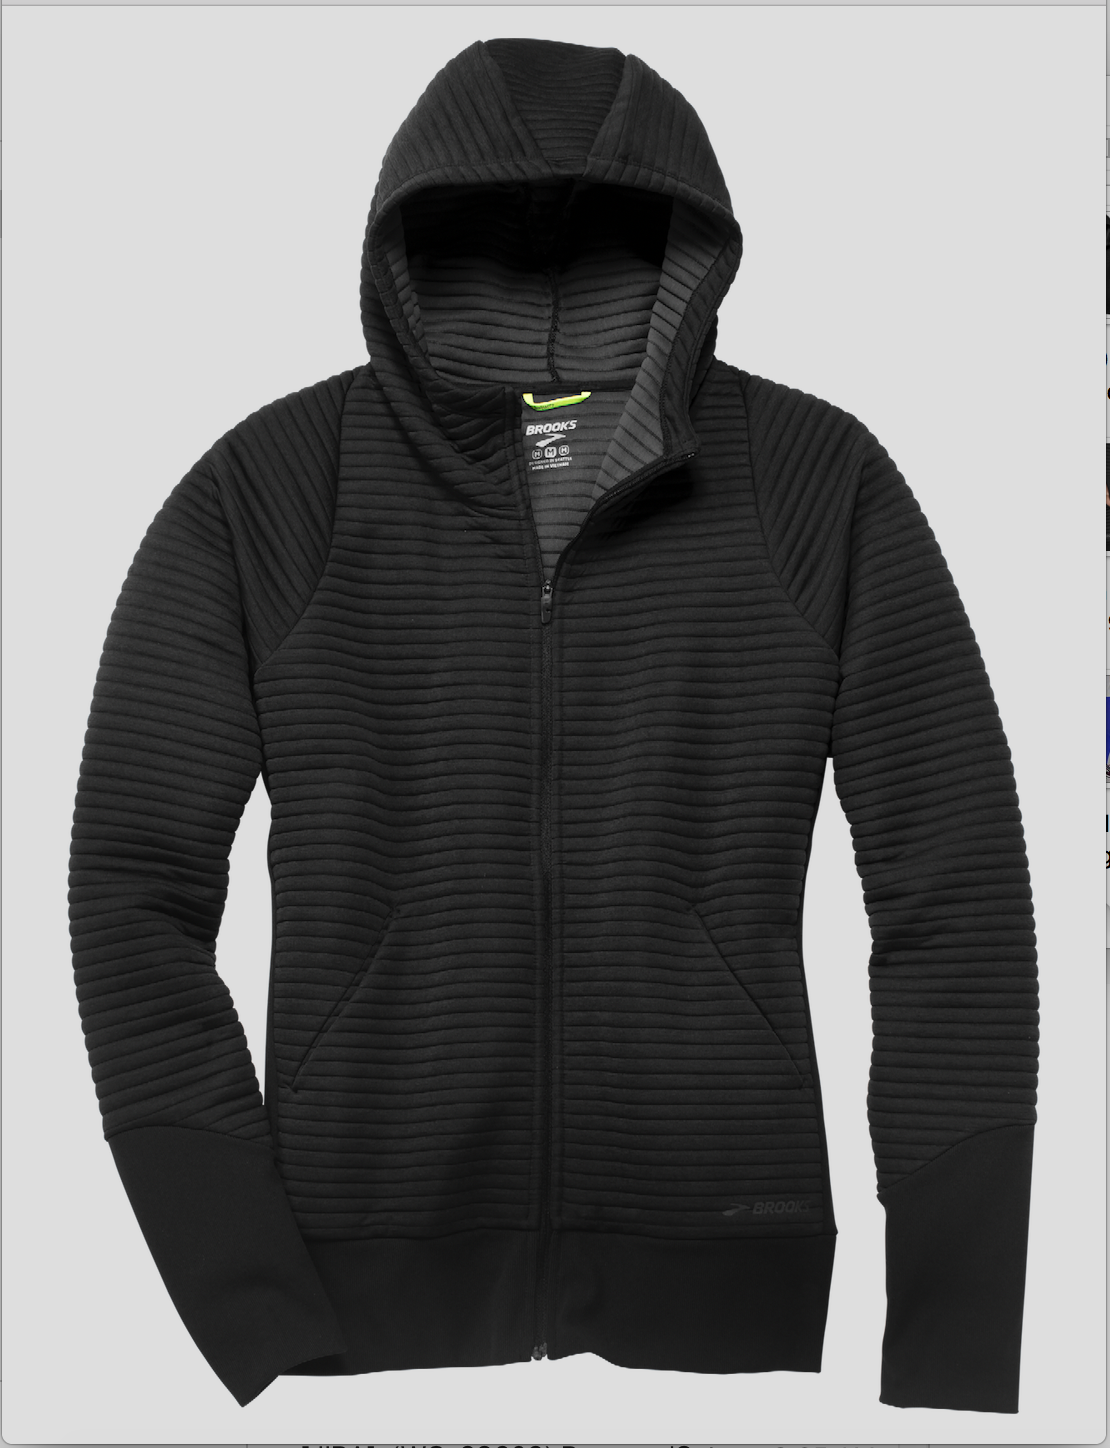 It's simple but pleated (to give it a little style), made with thermal fabric to continually keep you warm (but at the same time isn't bulky), has pockets (thank you thank you), and looks good on every single body type that I've seen in it so far. (Image: Brooks Running)